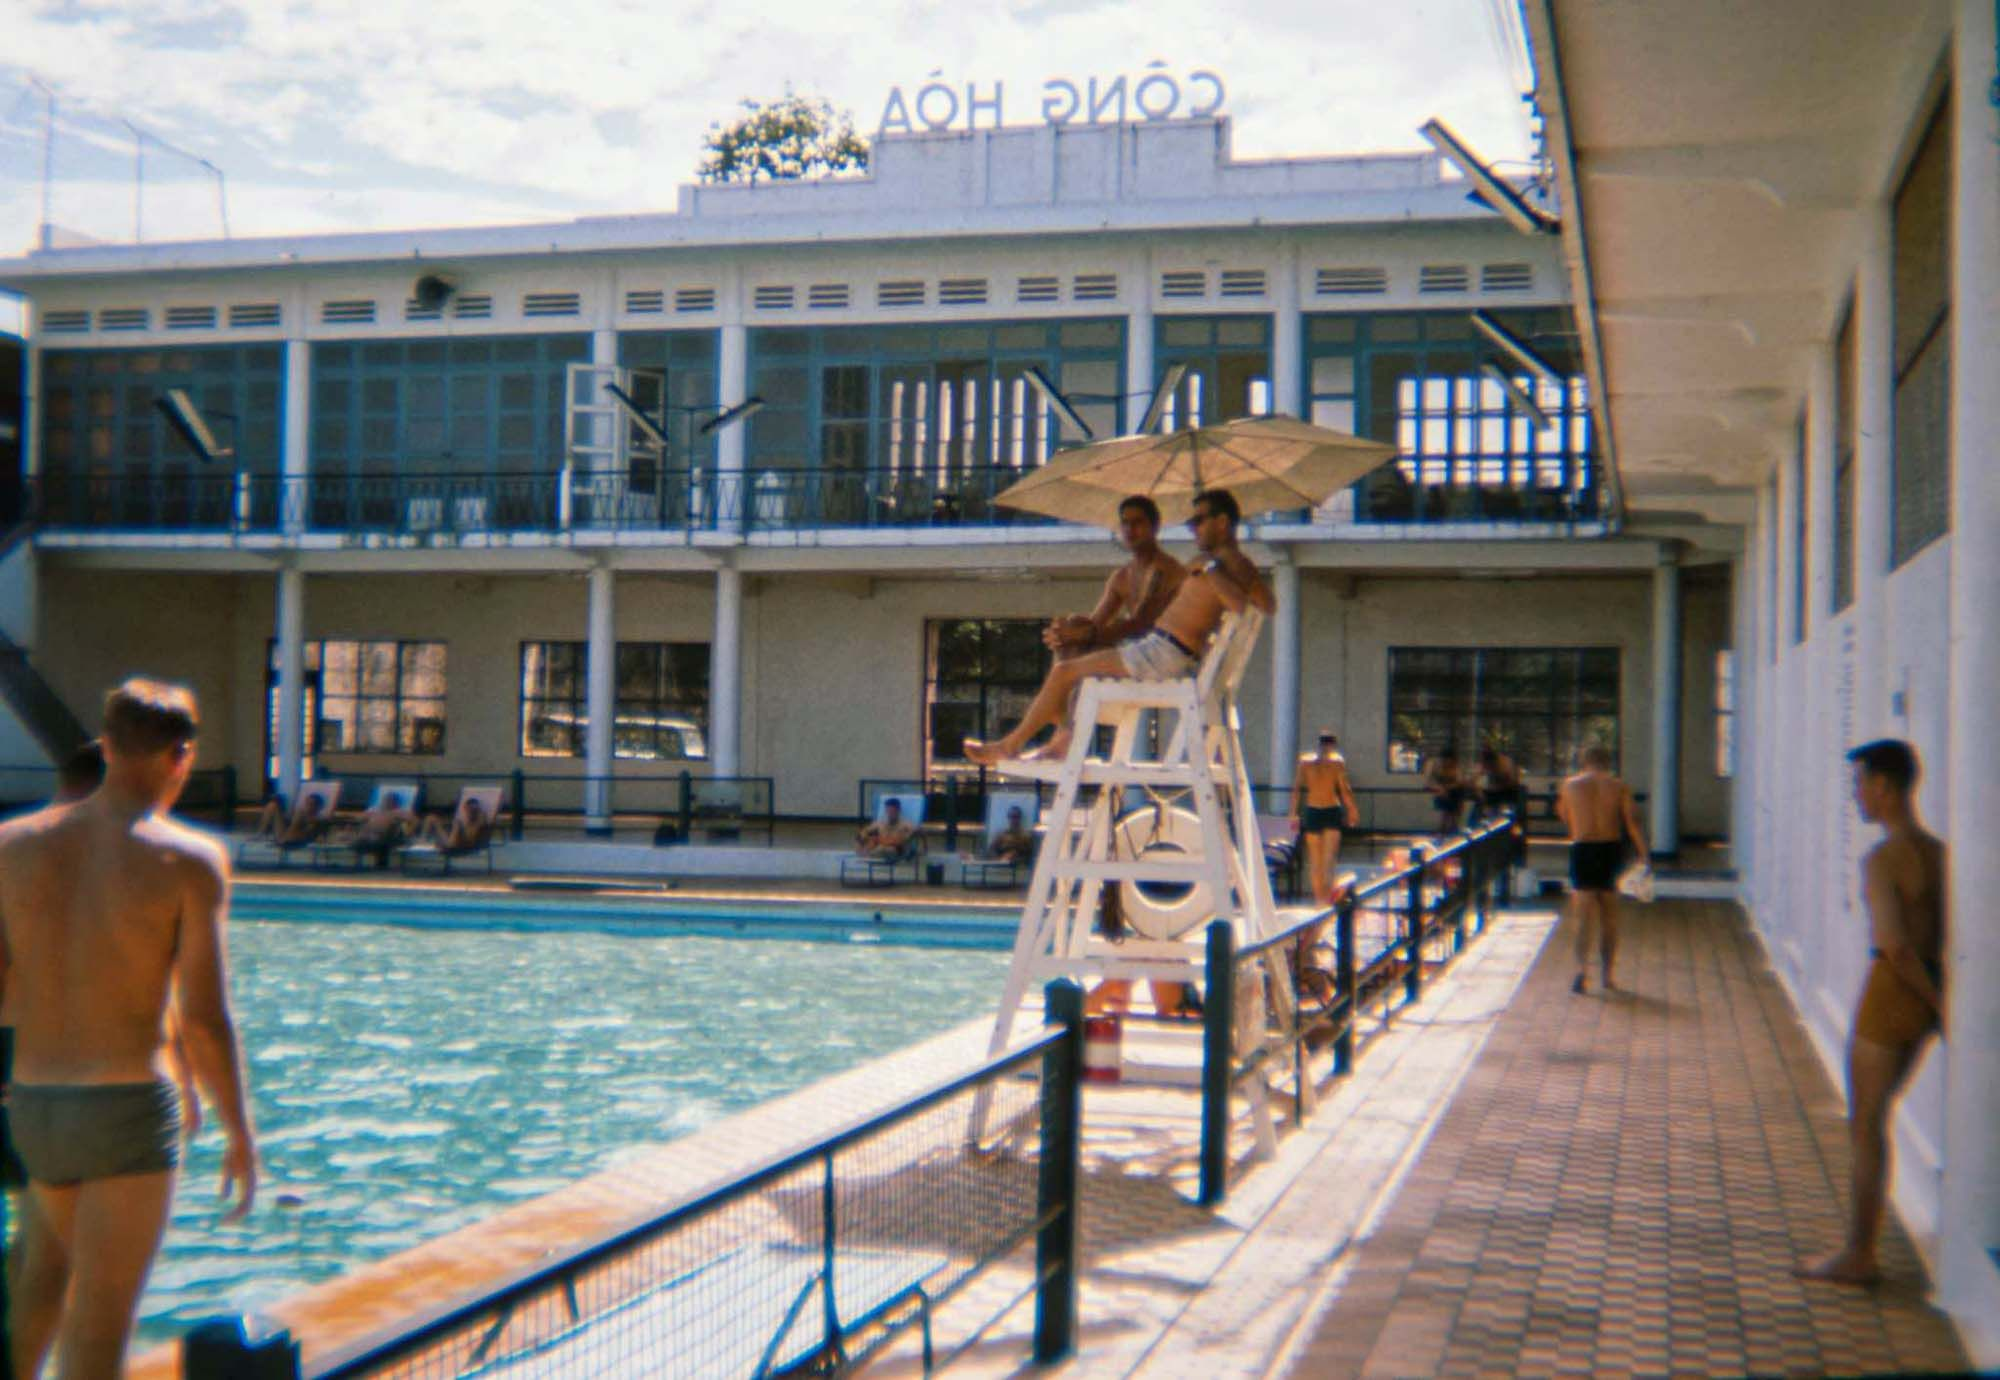 Getting Cool at the Cong Hoa Swimming Pool in 1965 with Photos